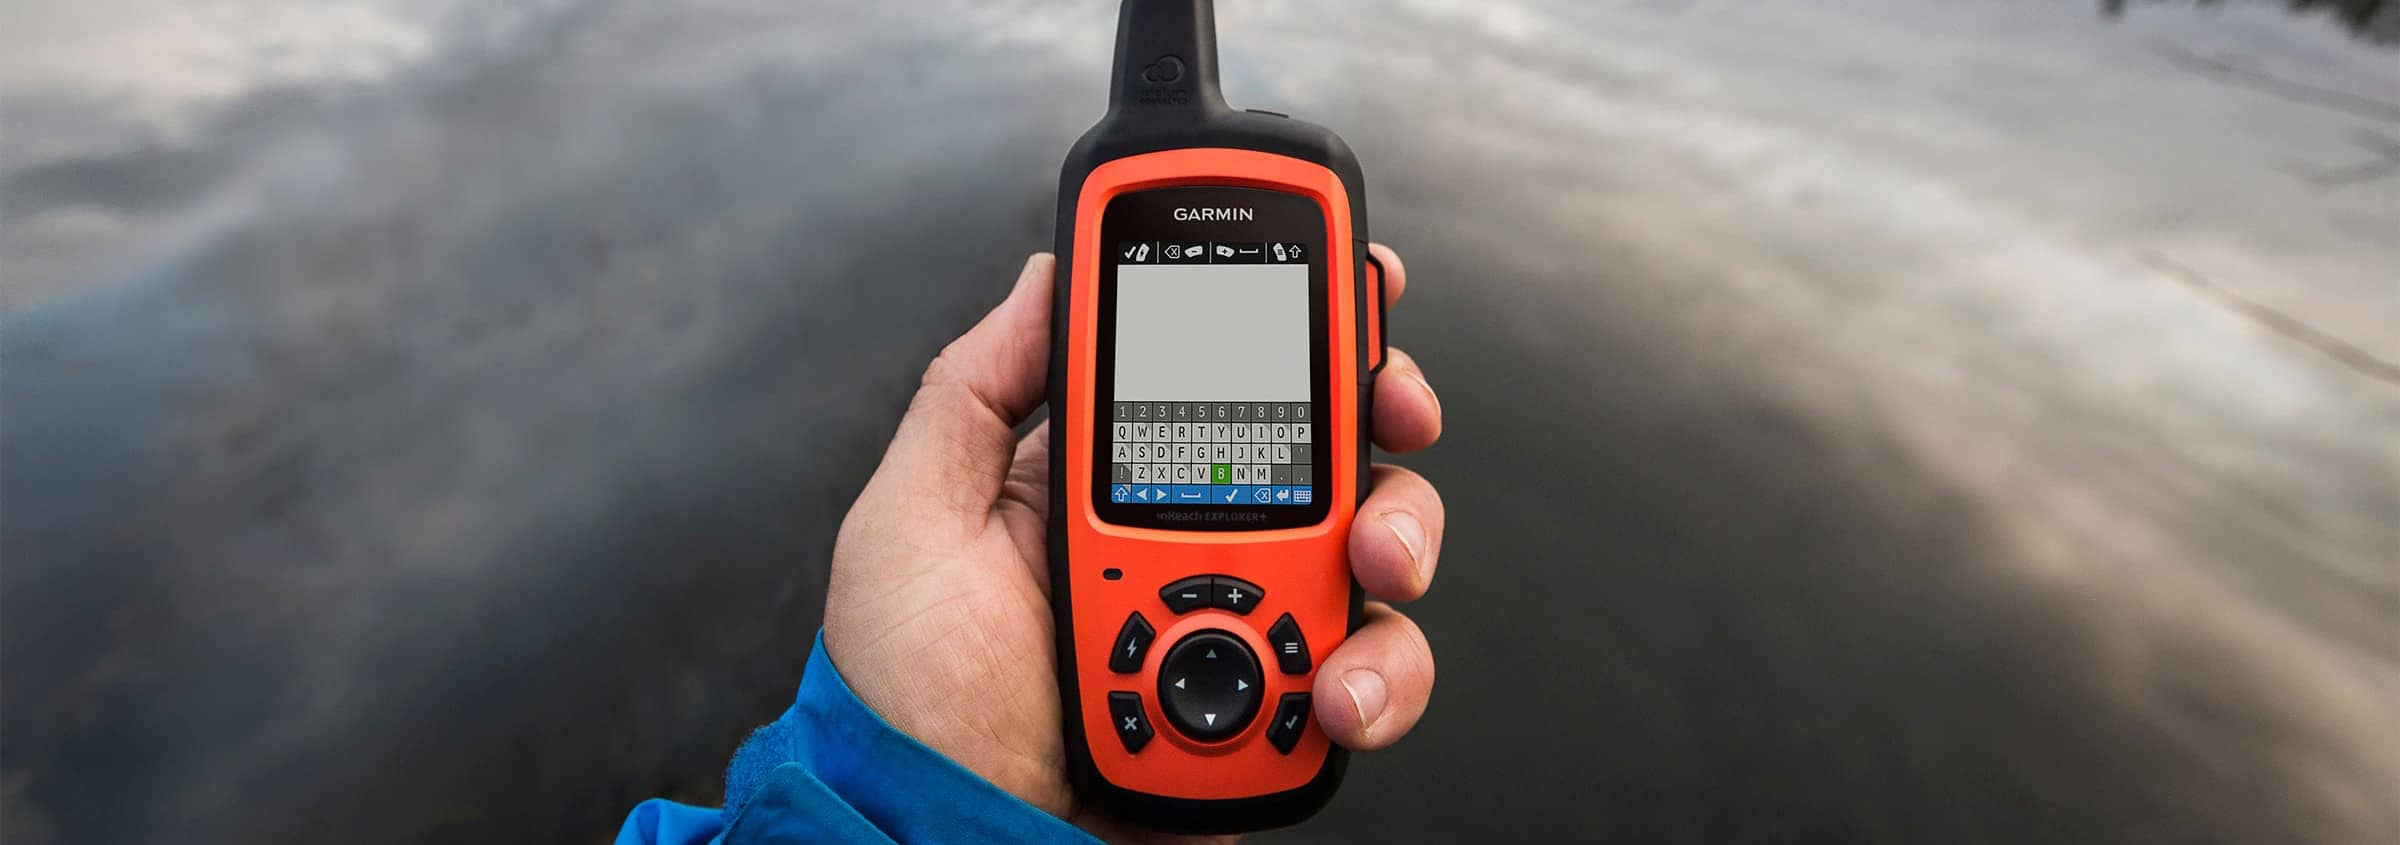 Best GPS for Kayaking Reviewed in Detail